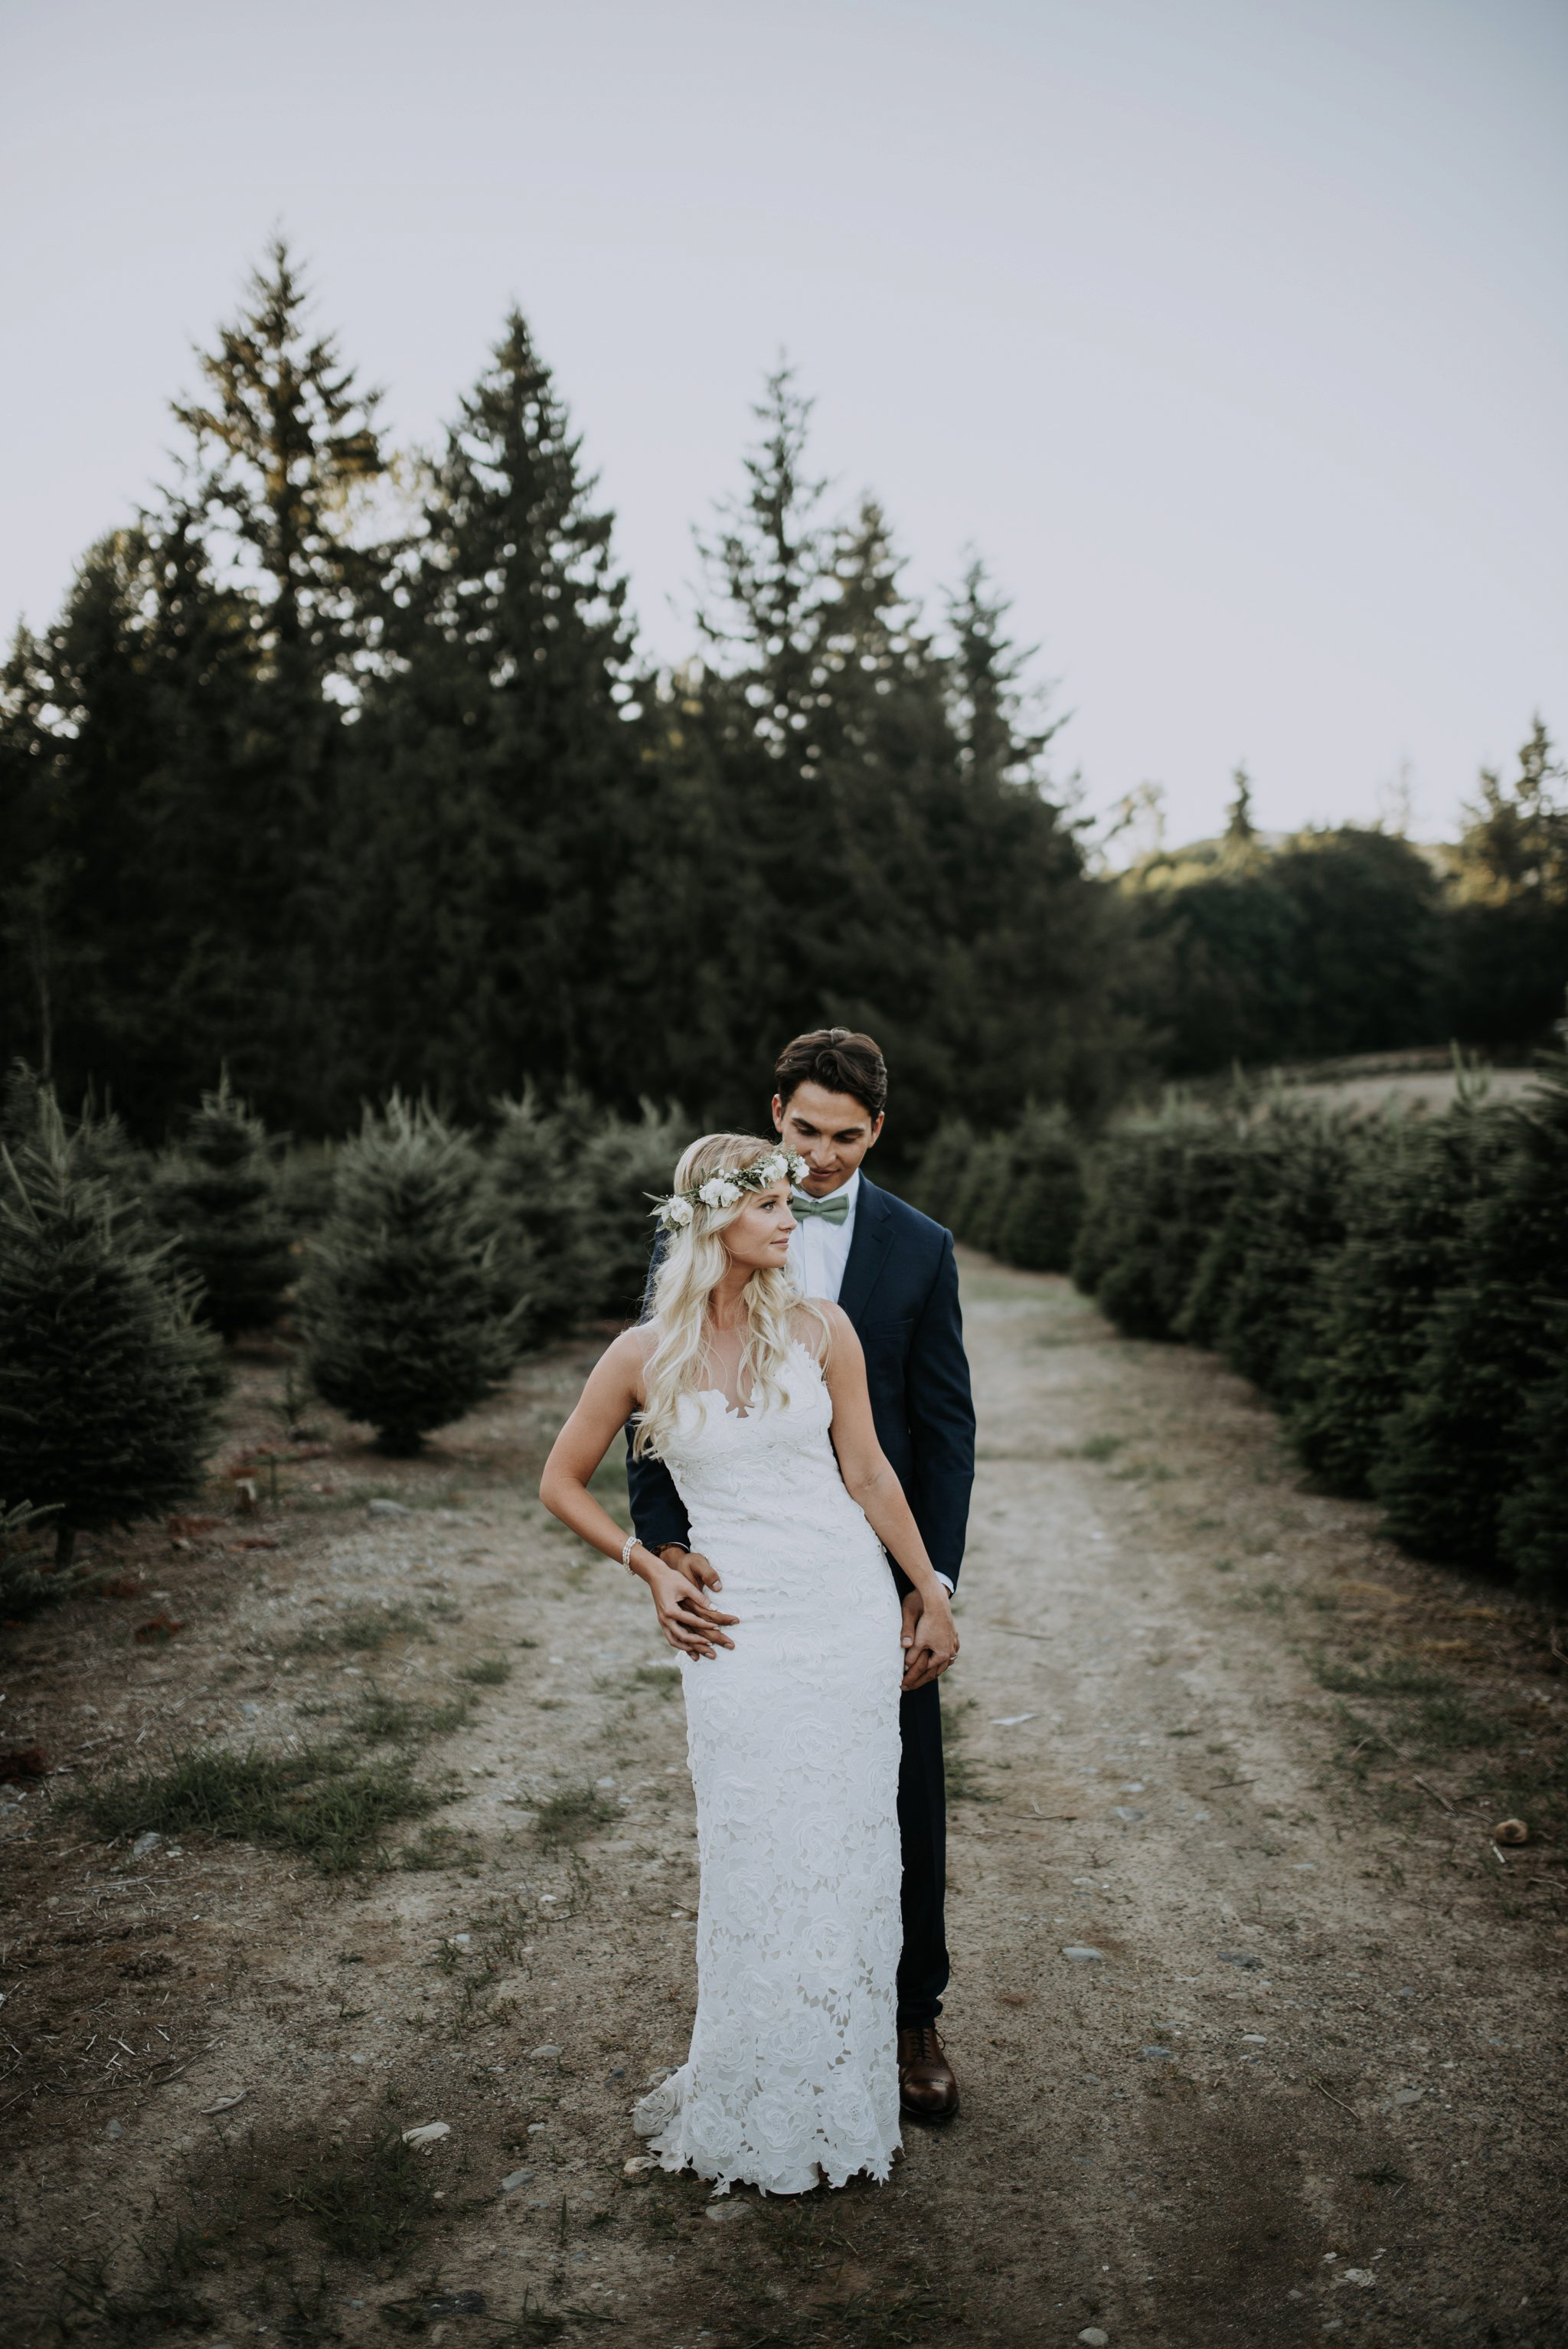 trinity-tree-farm-issaquah-washington-wedding-seattle-lifestyle-photographer-caitlyn-nikula-photography-96.jpg